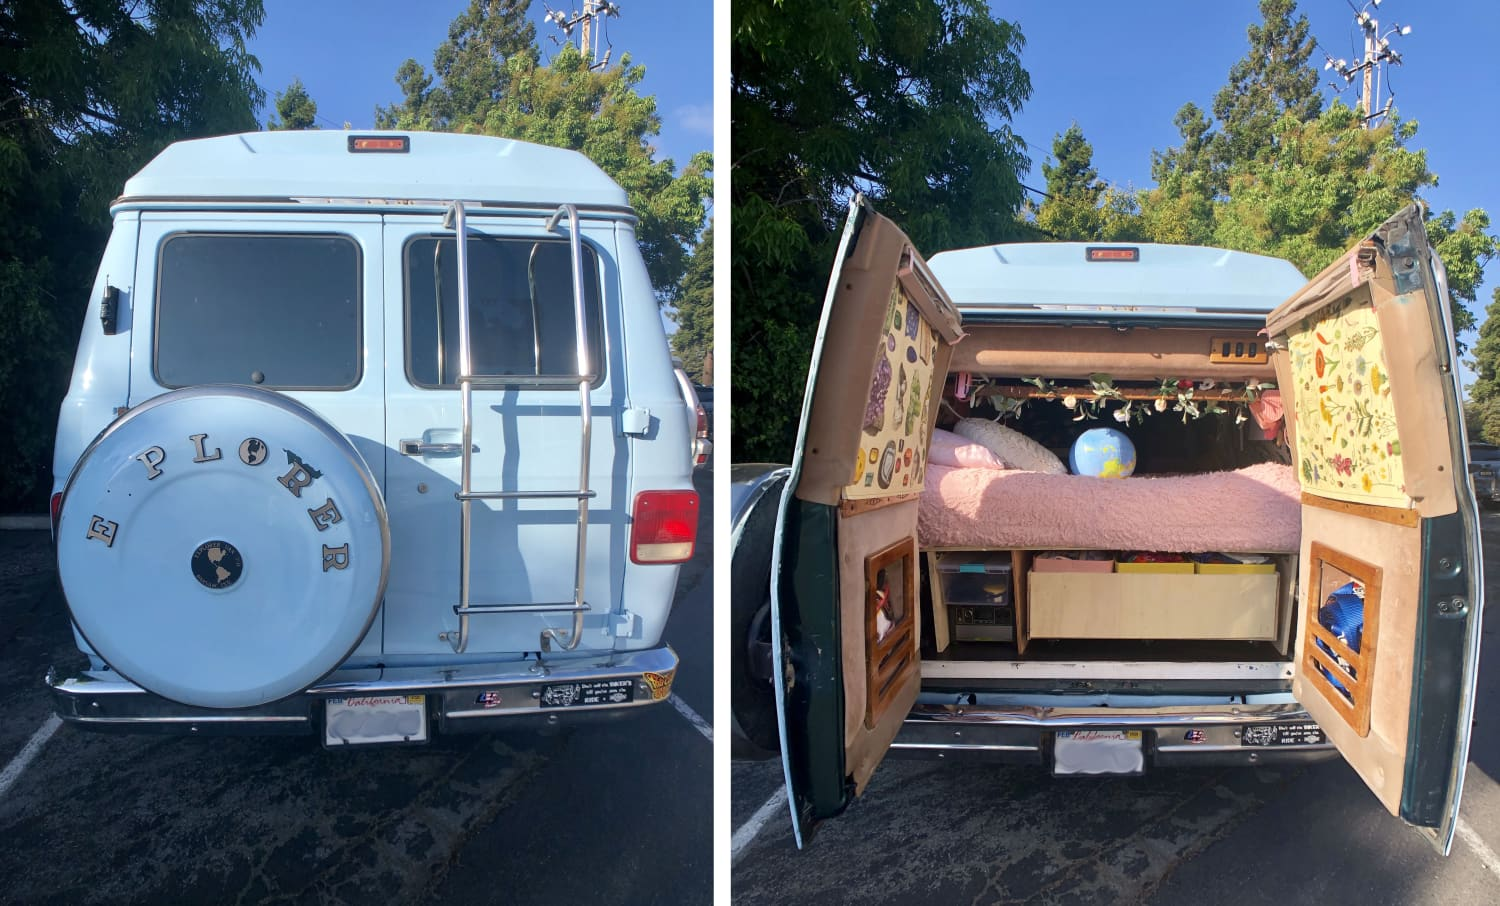 This Converted Van Is One of the Coziest Tiny Homes on Wheels We've Seen